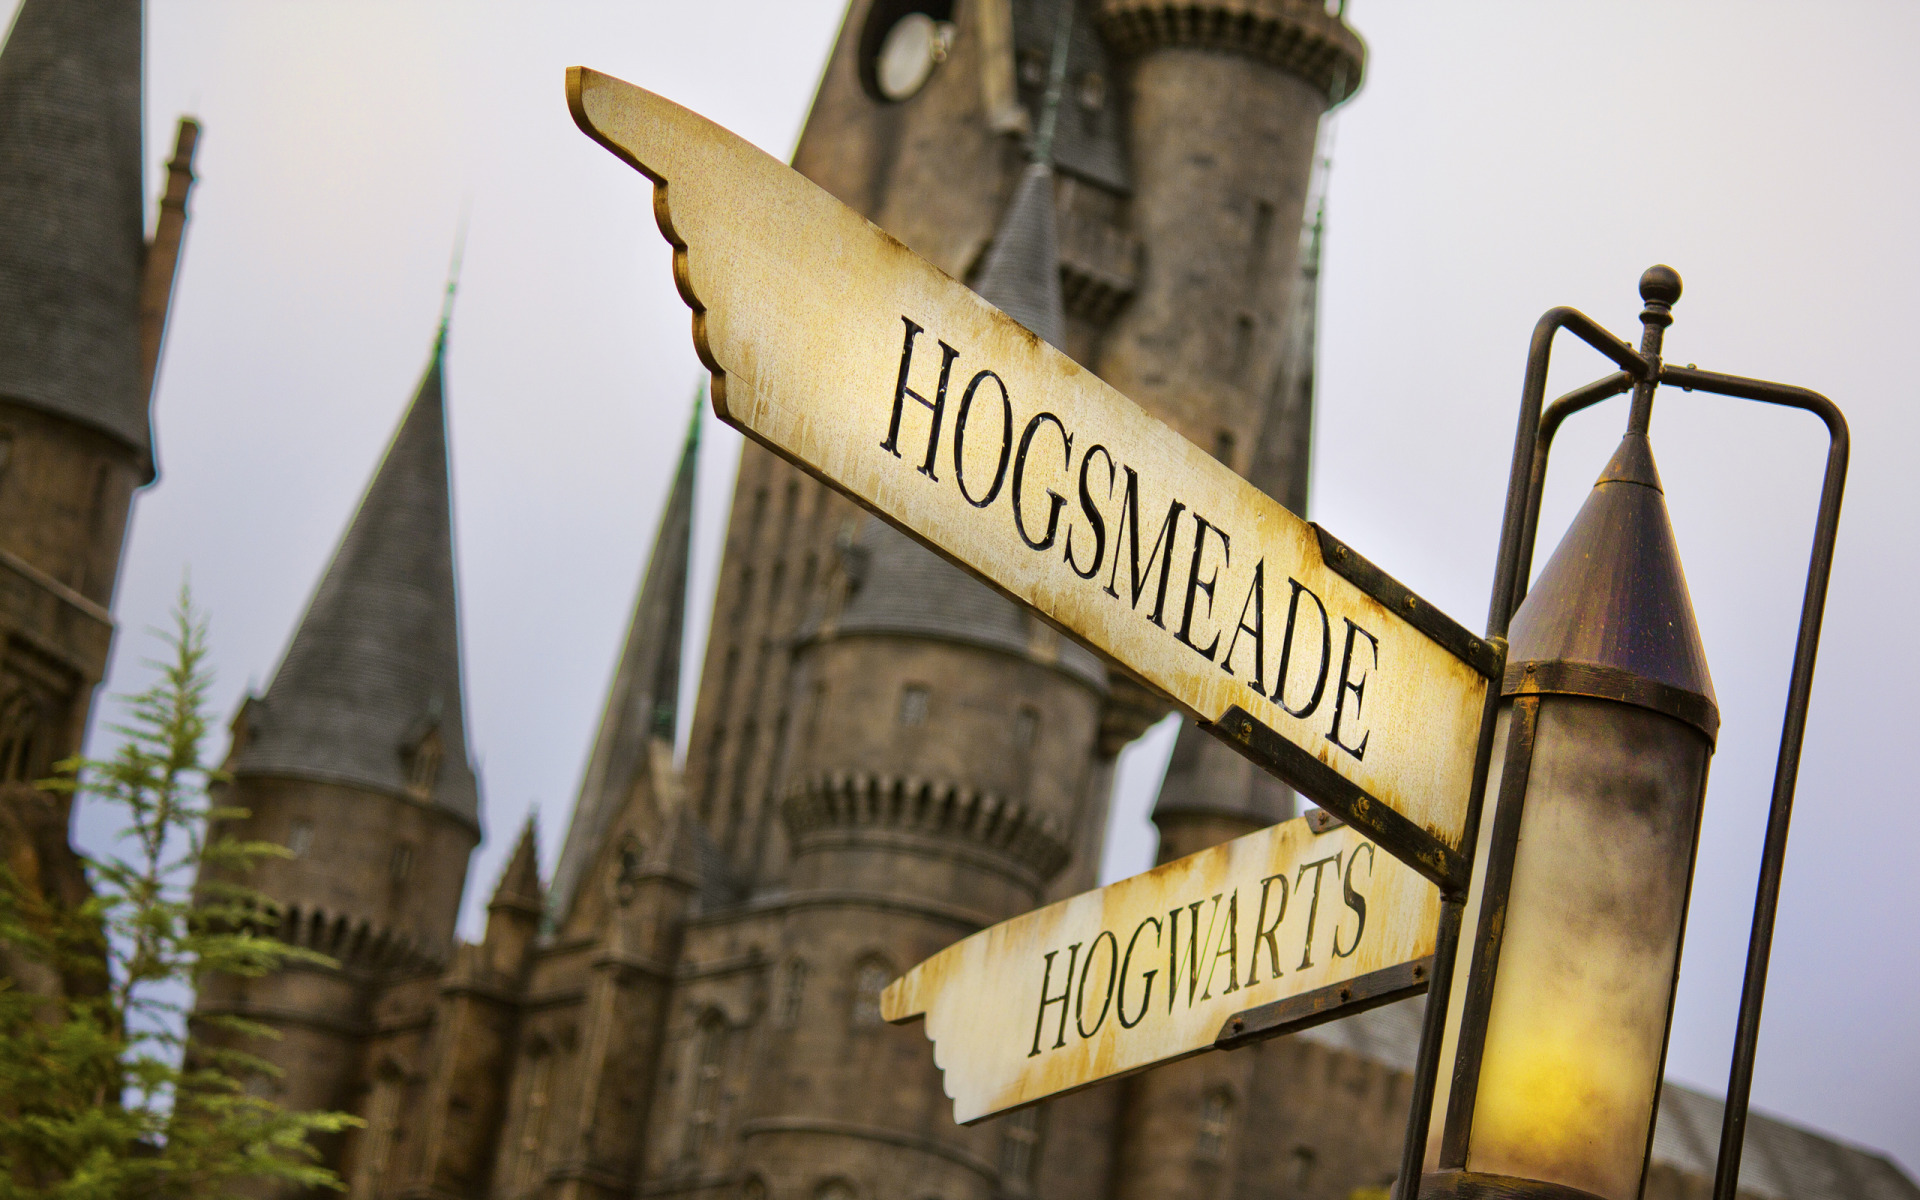 wizarding world of harry potter backgrounds - Google Search